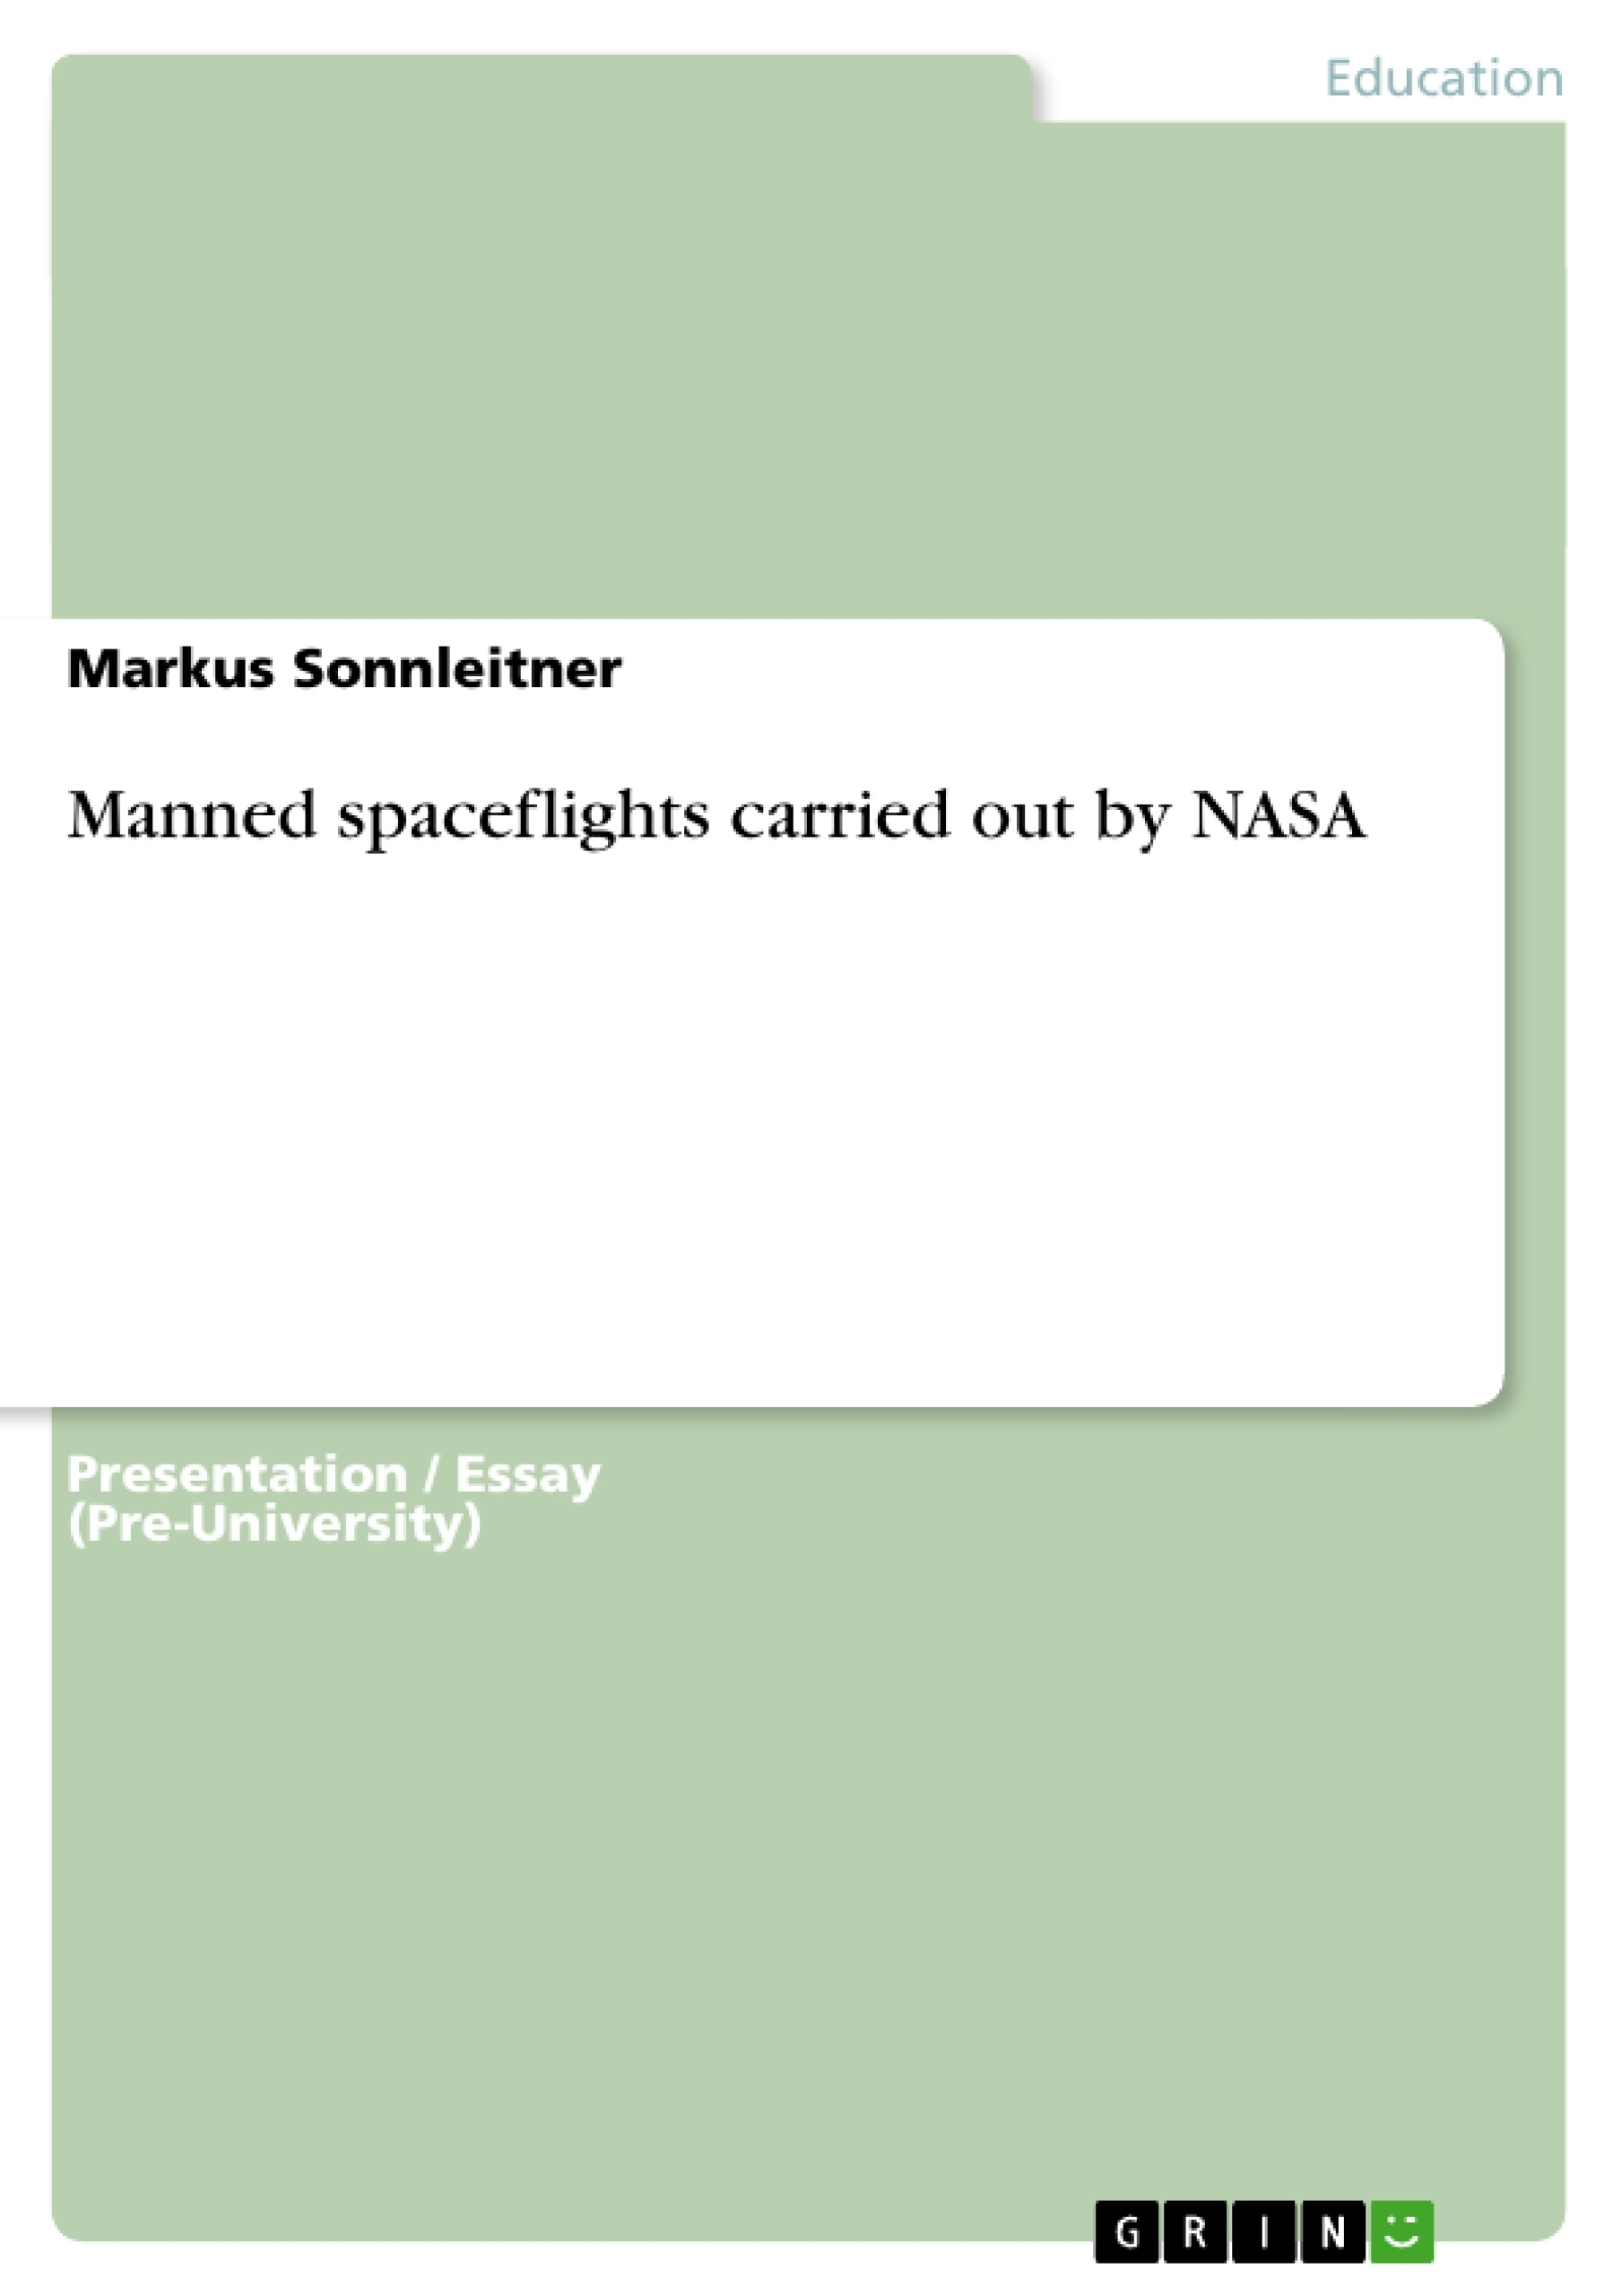 Title: Manned spaceflights carried out by NASA